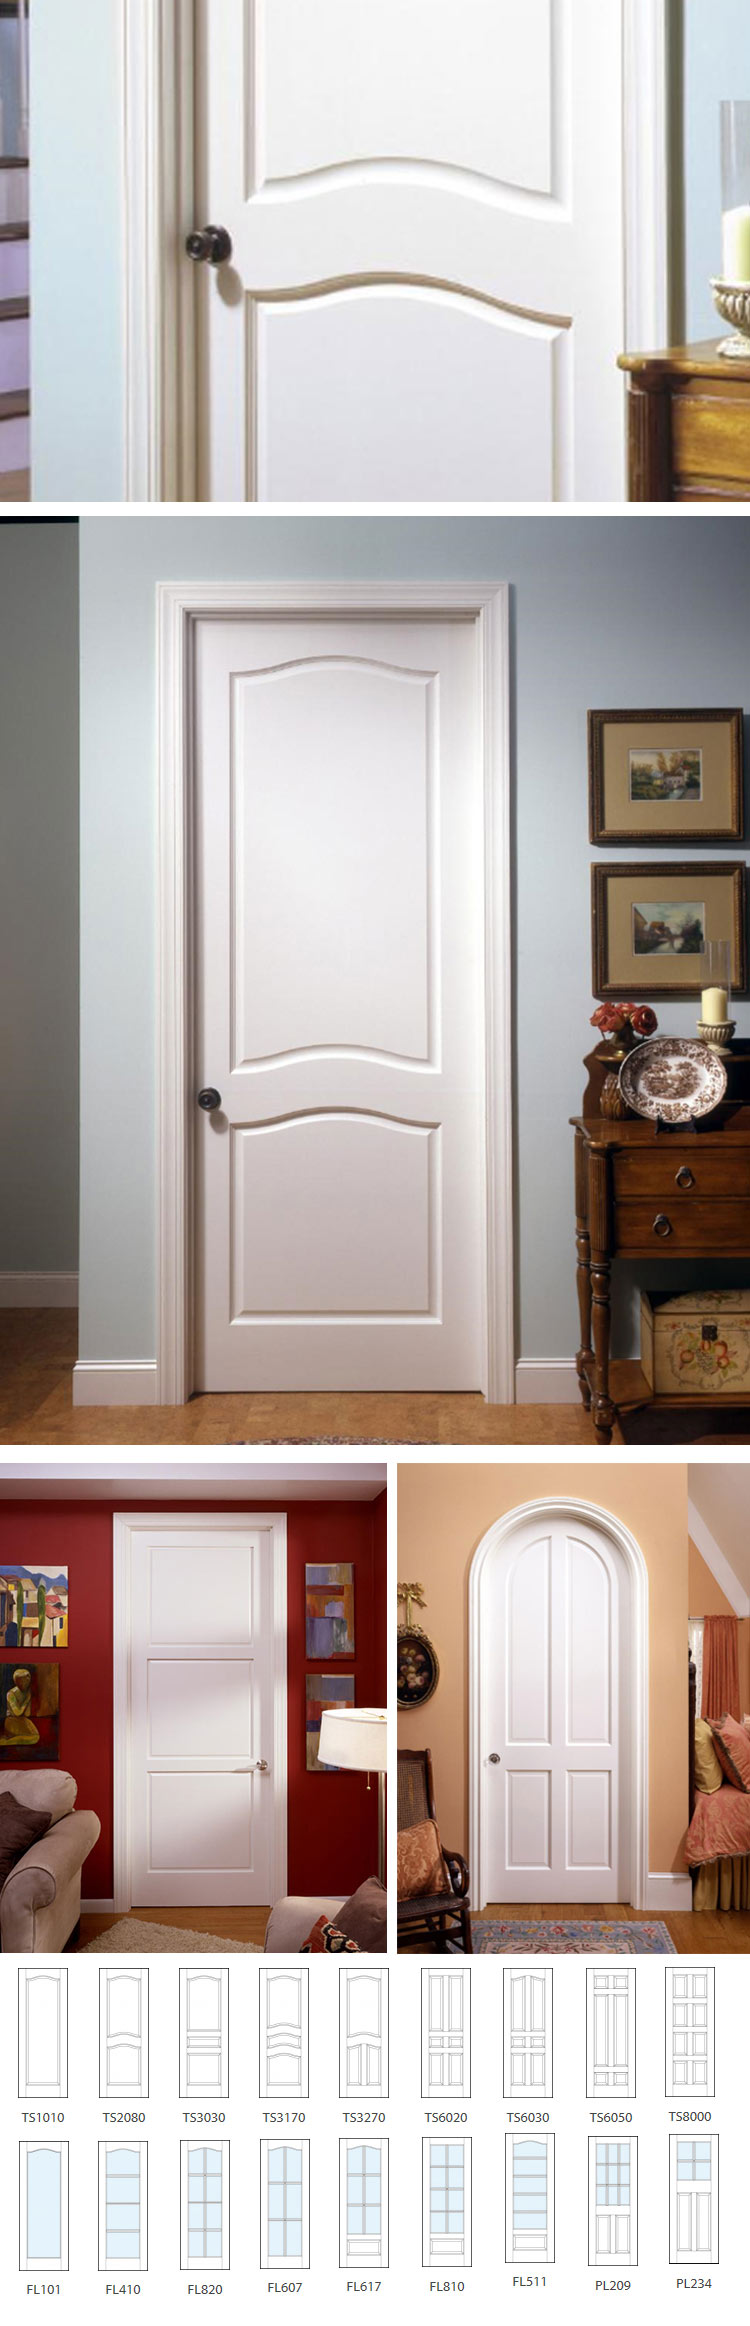 hinged interior door-22-03